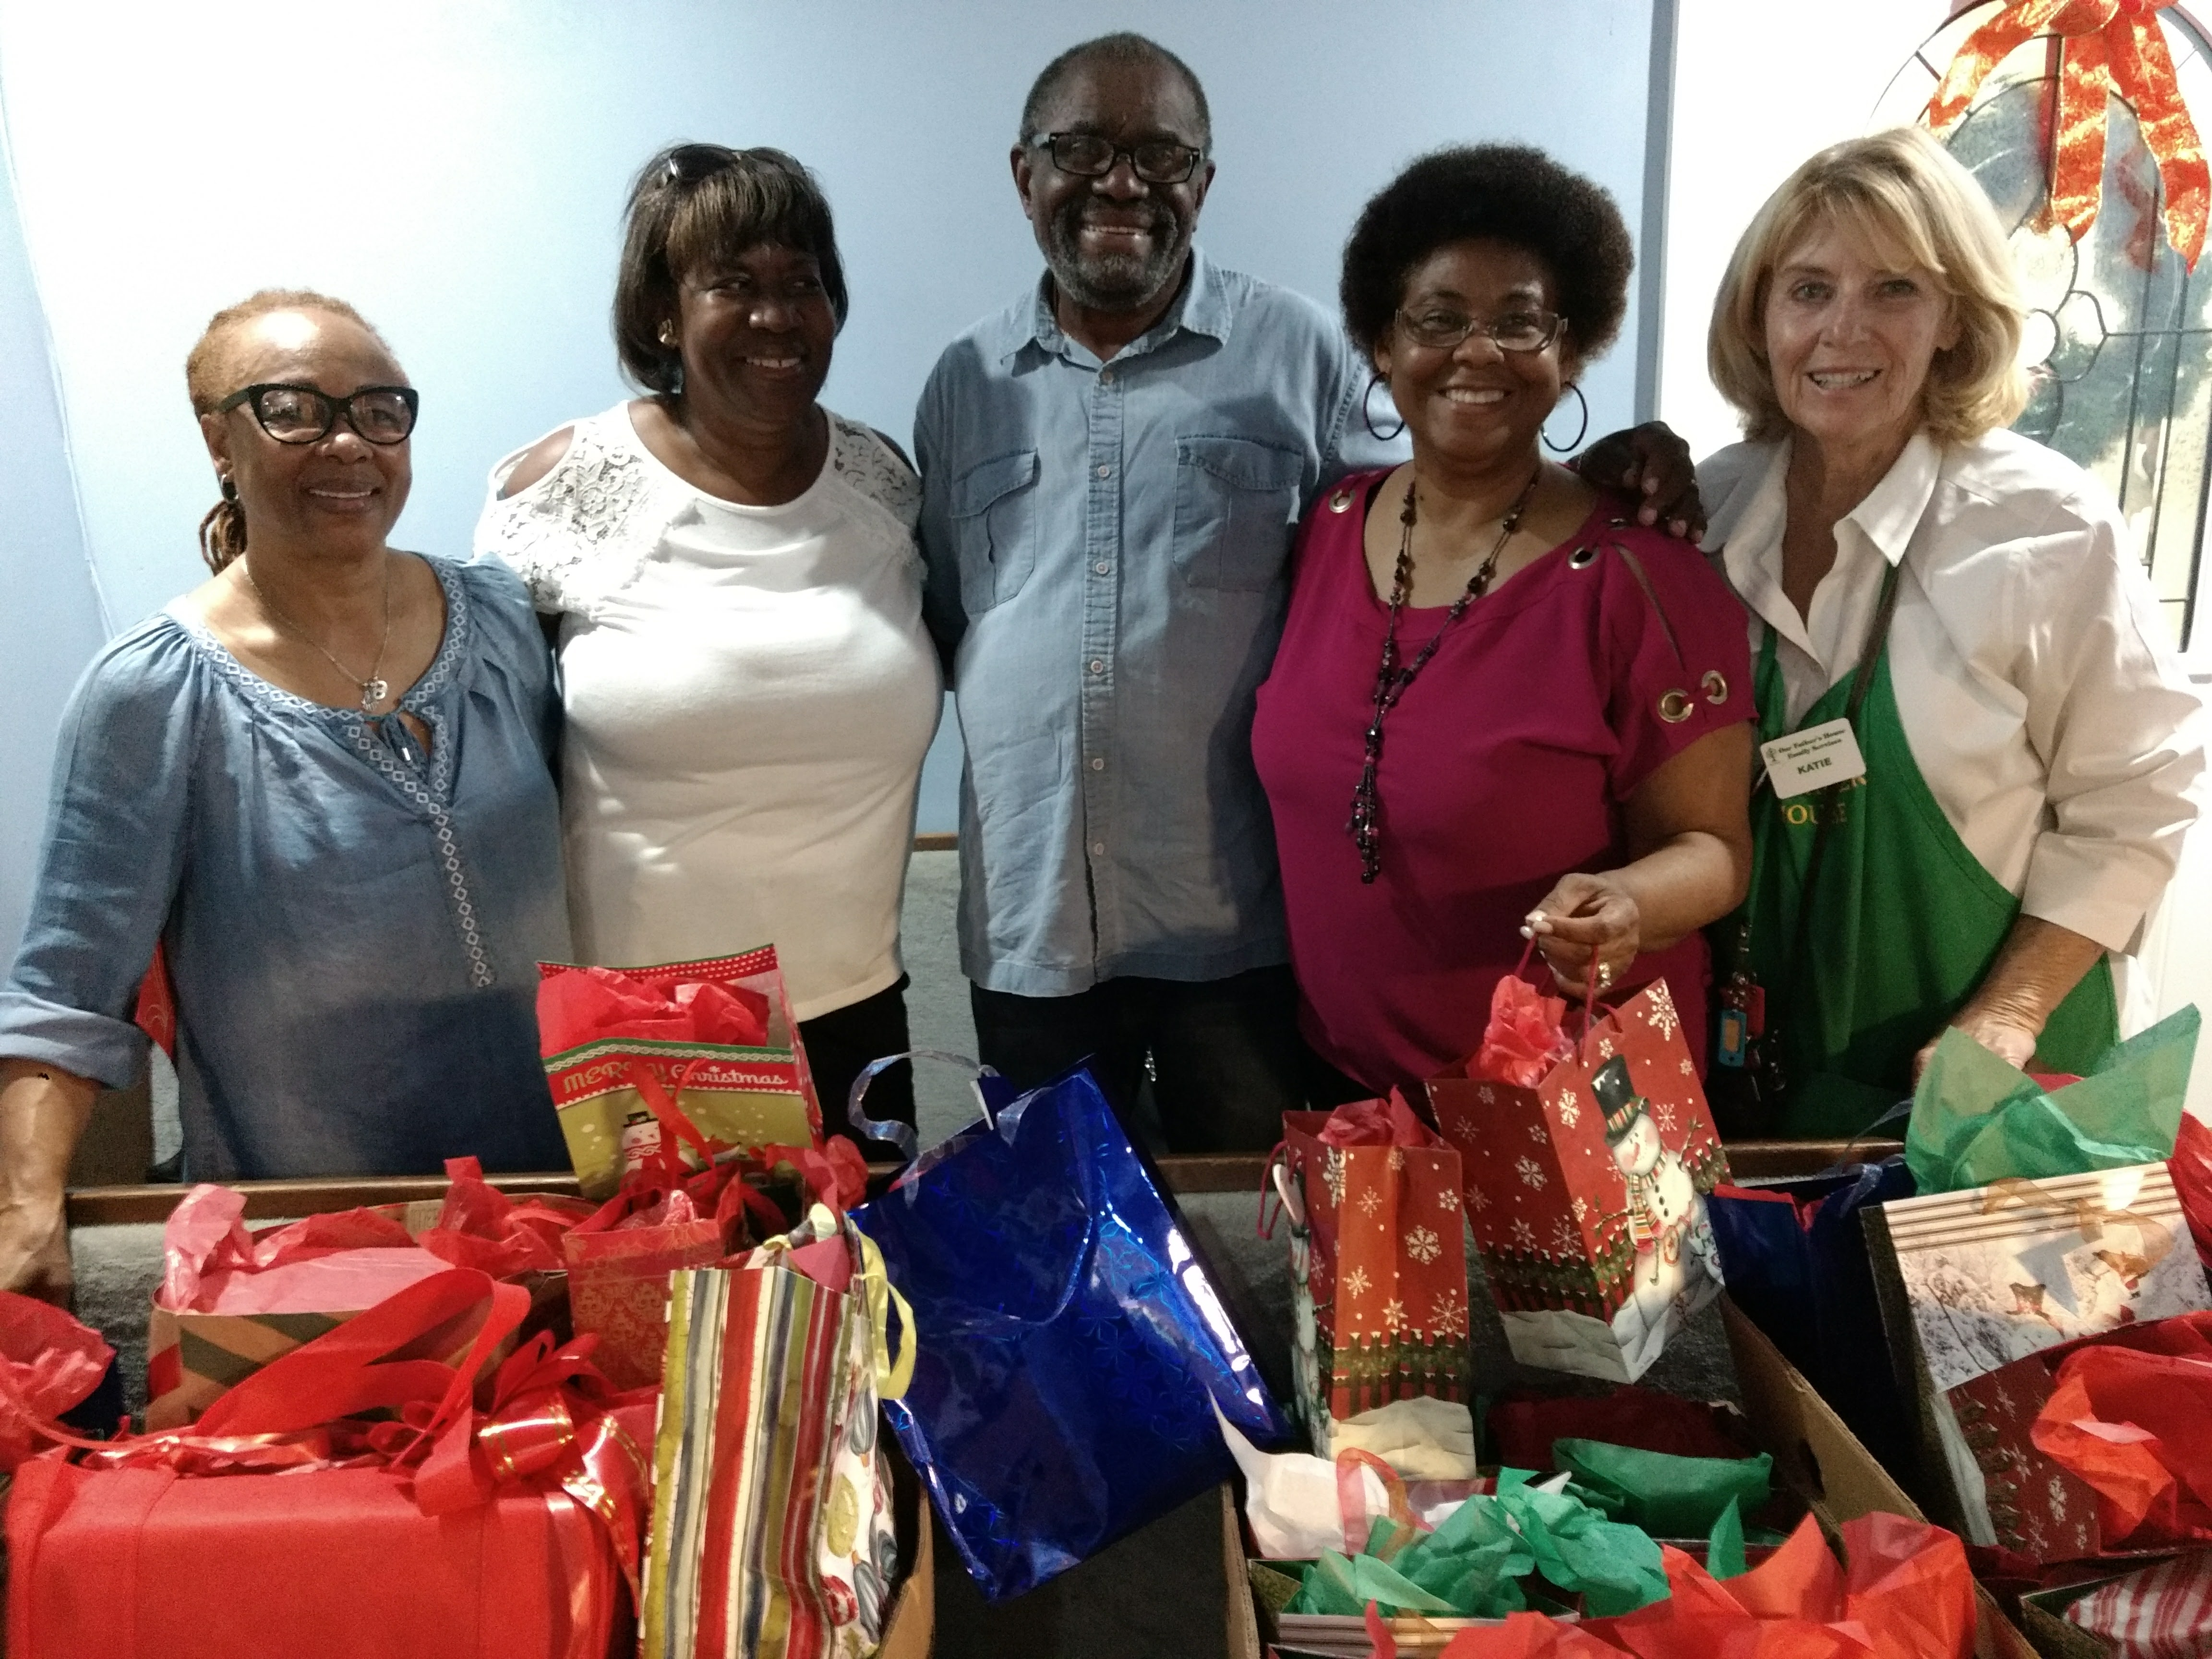 Homeless charity volunteers giving Christmas gifts to homeless people.